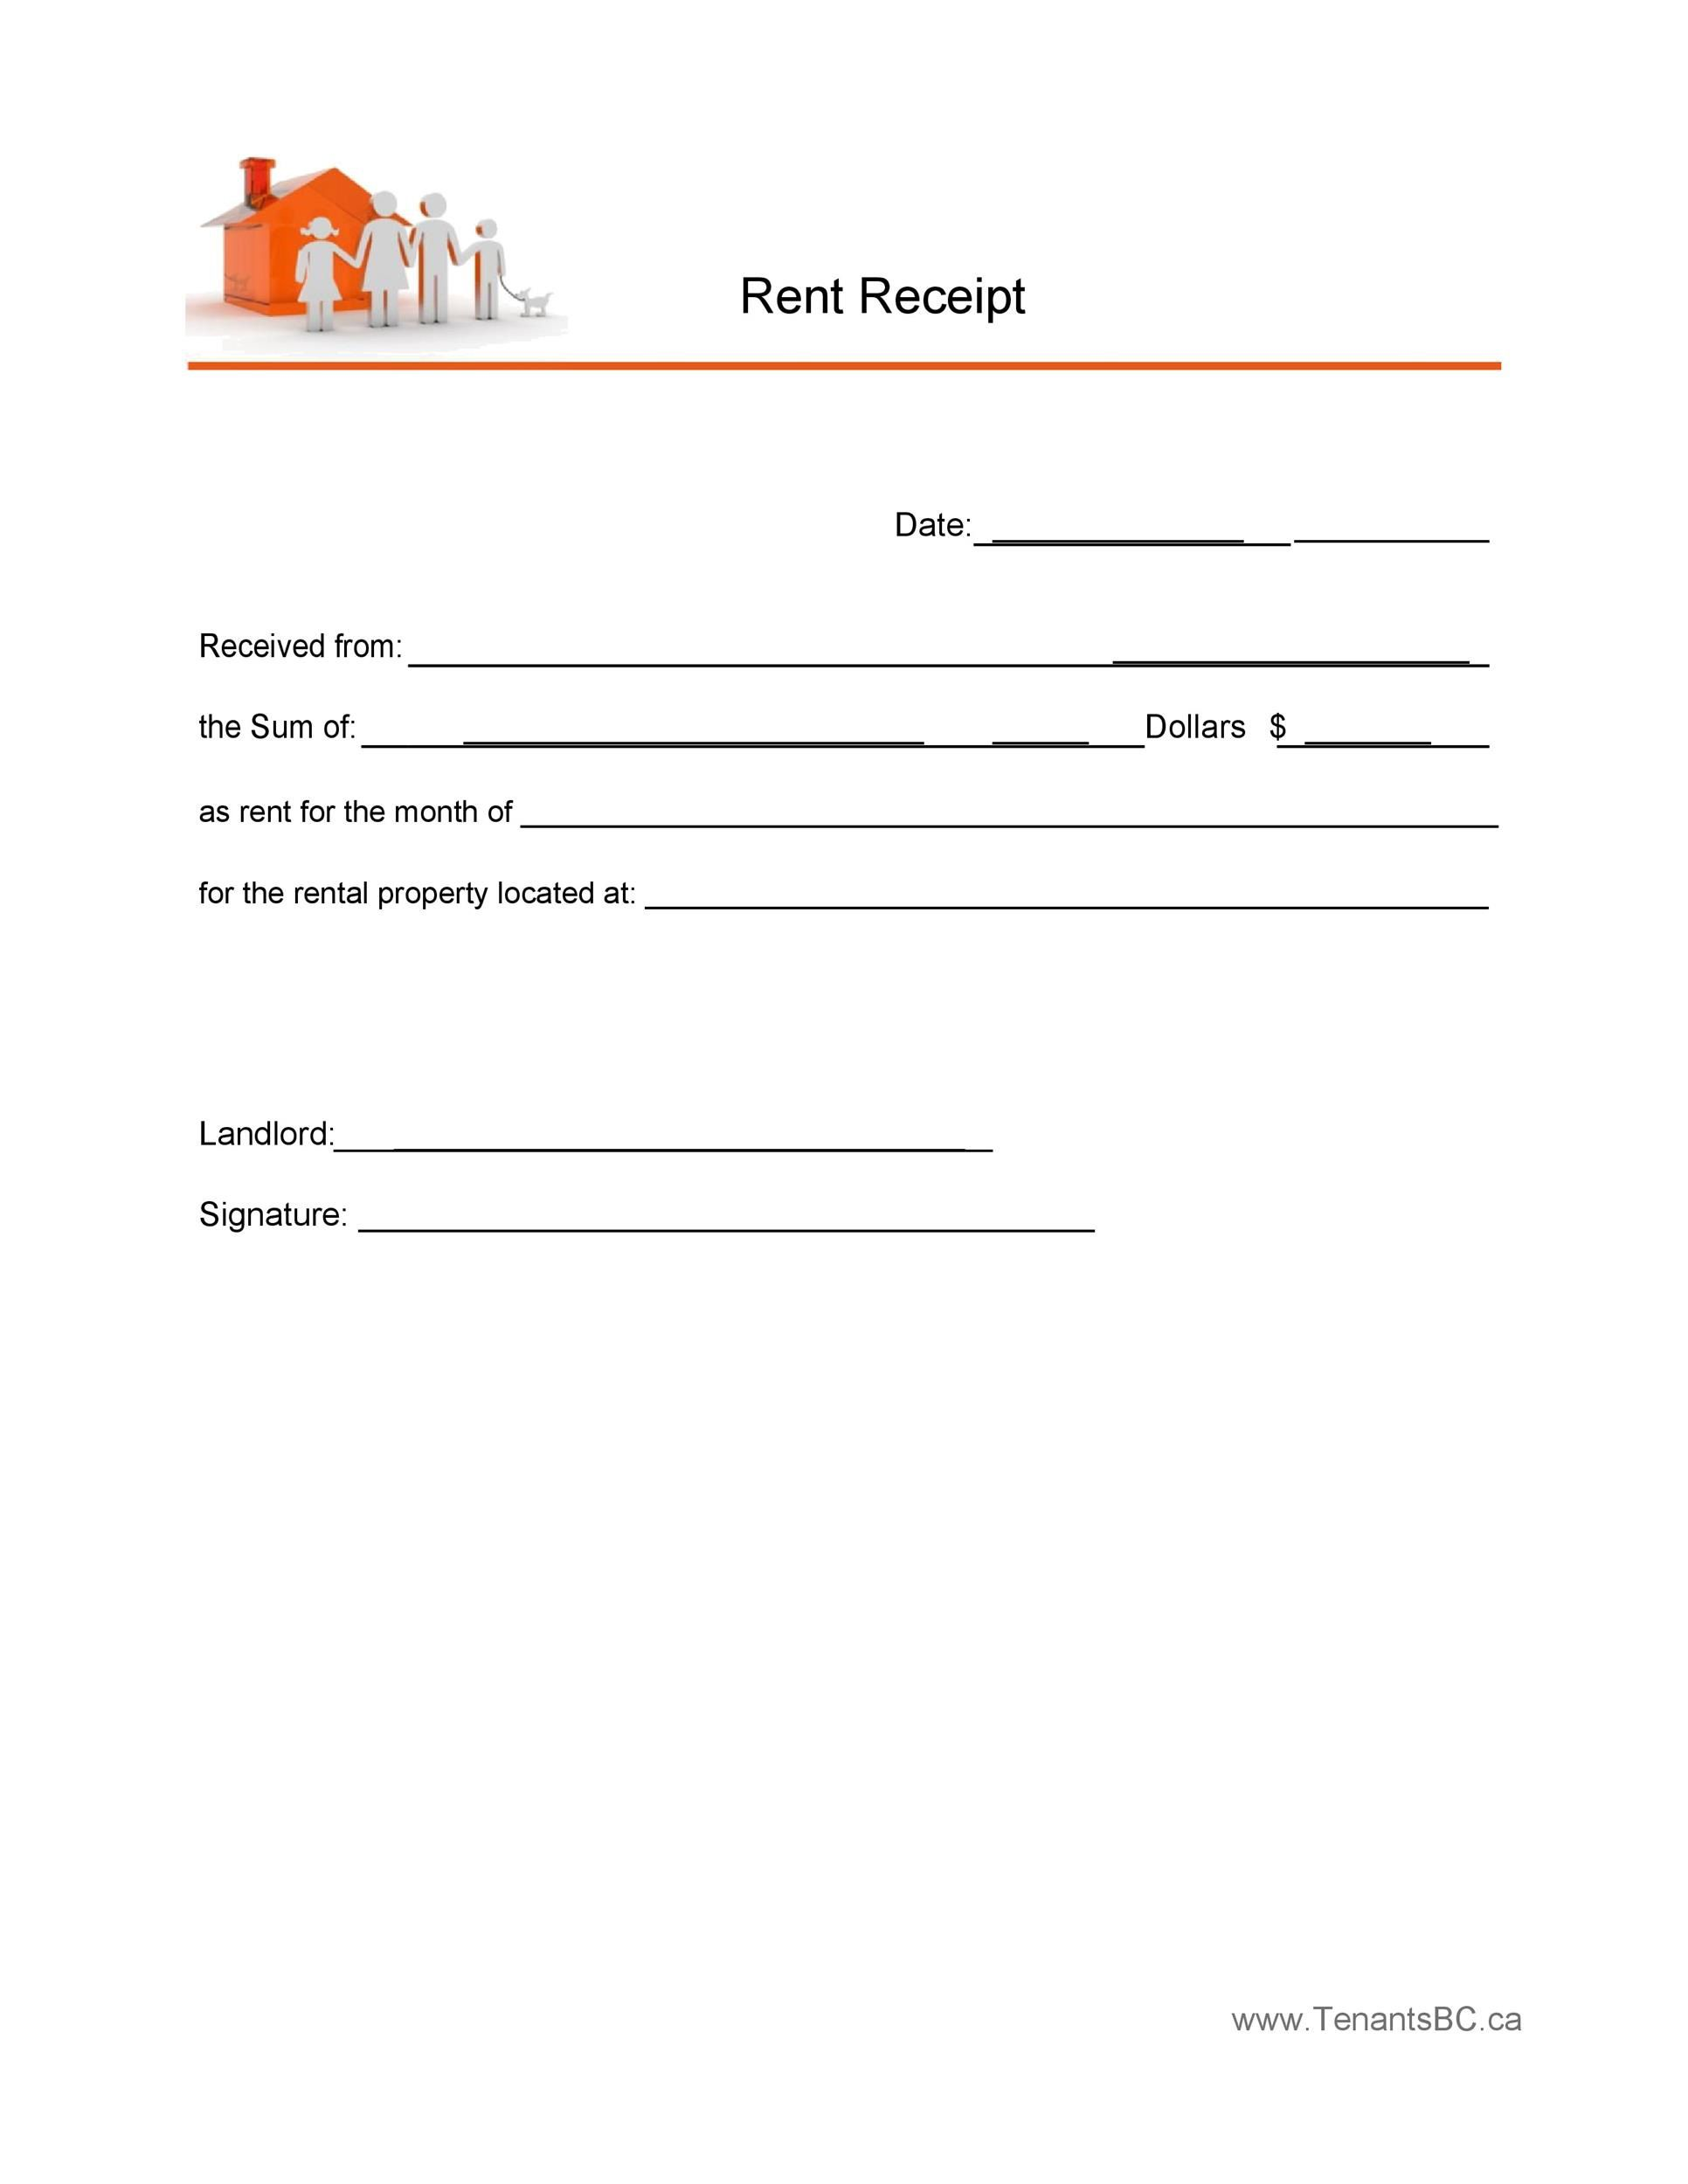 008 Surprising House Rent Receipt Sample Doc Highest Clarity  Template Word Document Free Download Format For Income TaxFull